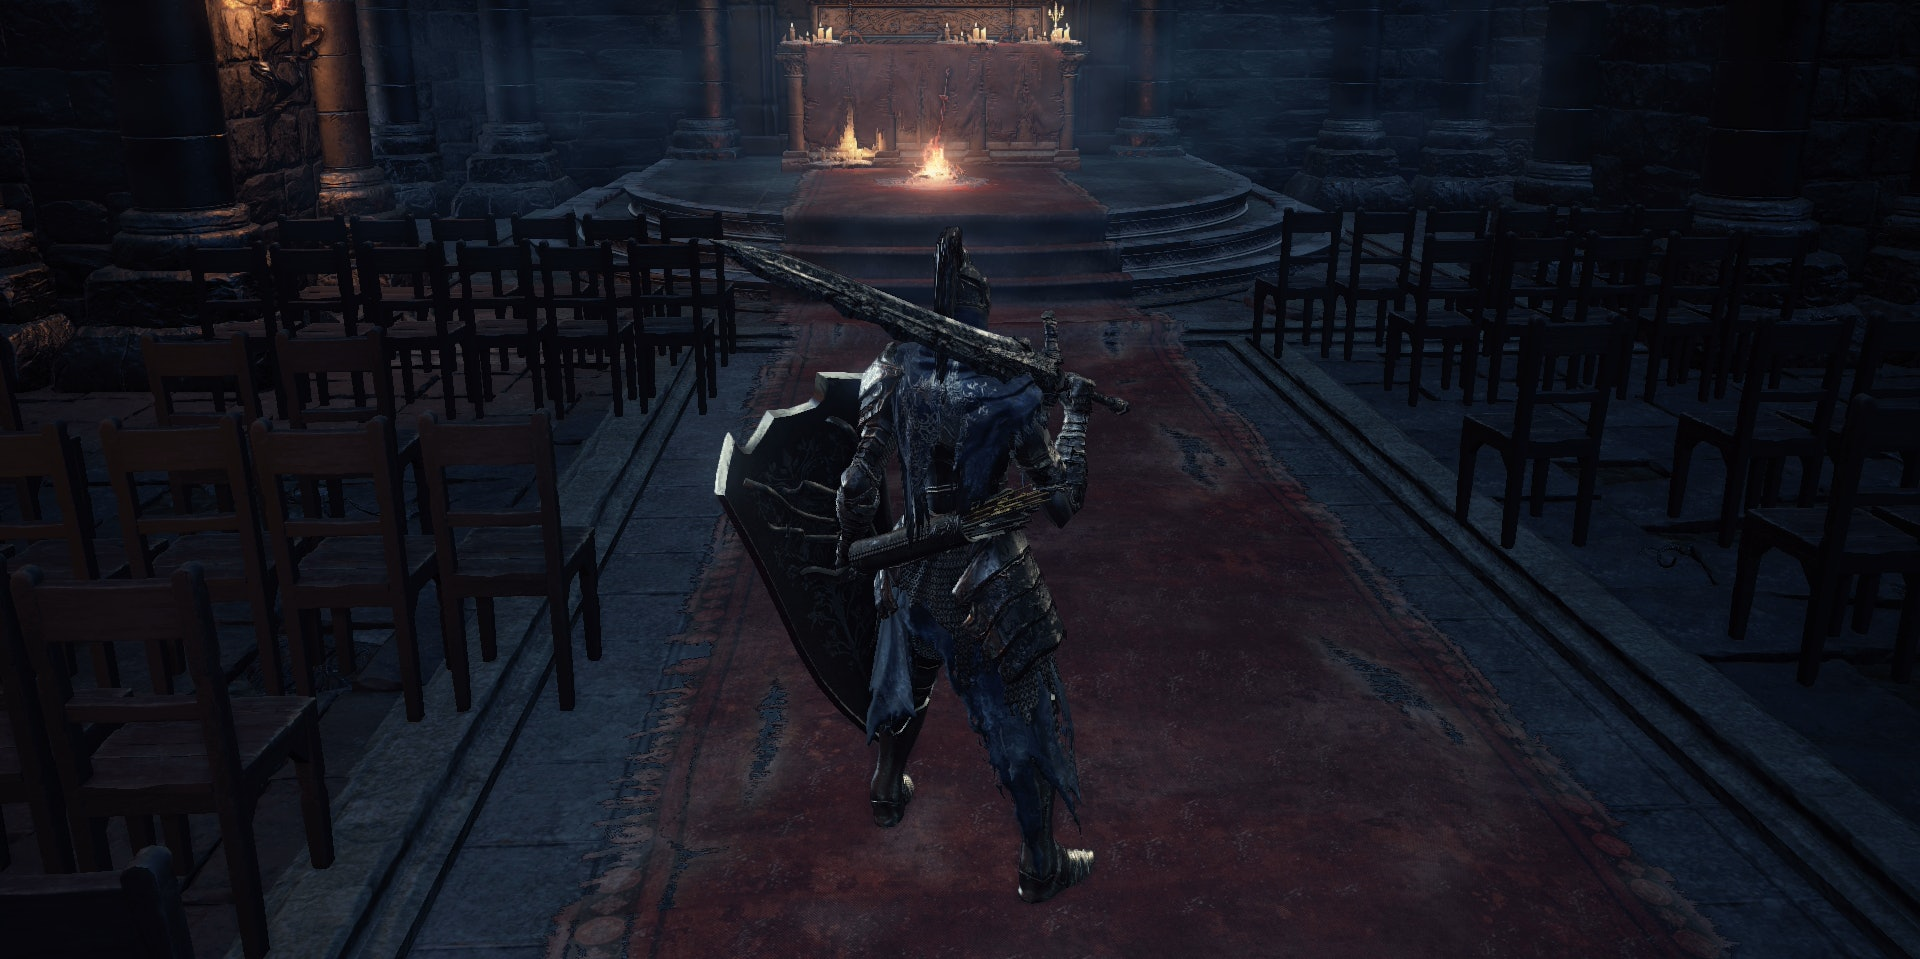 How to Prepare for the New 'Dark Souls 3' DLC